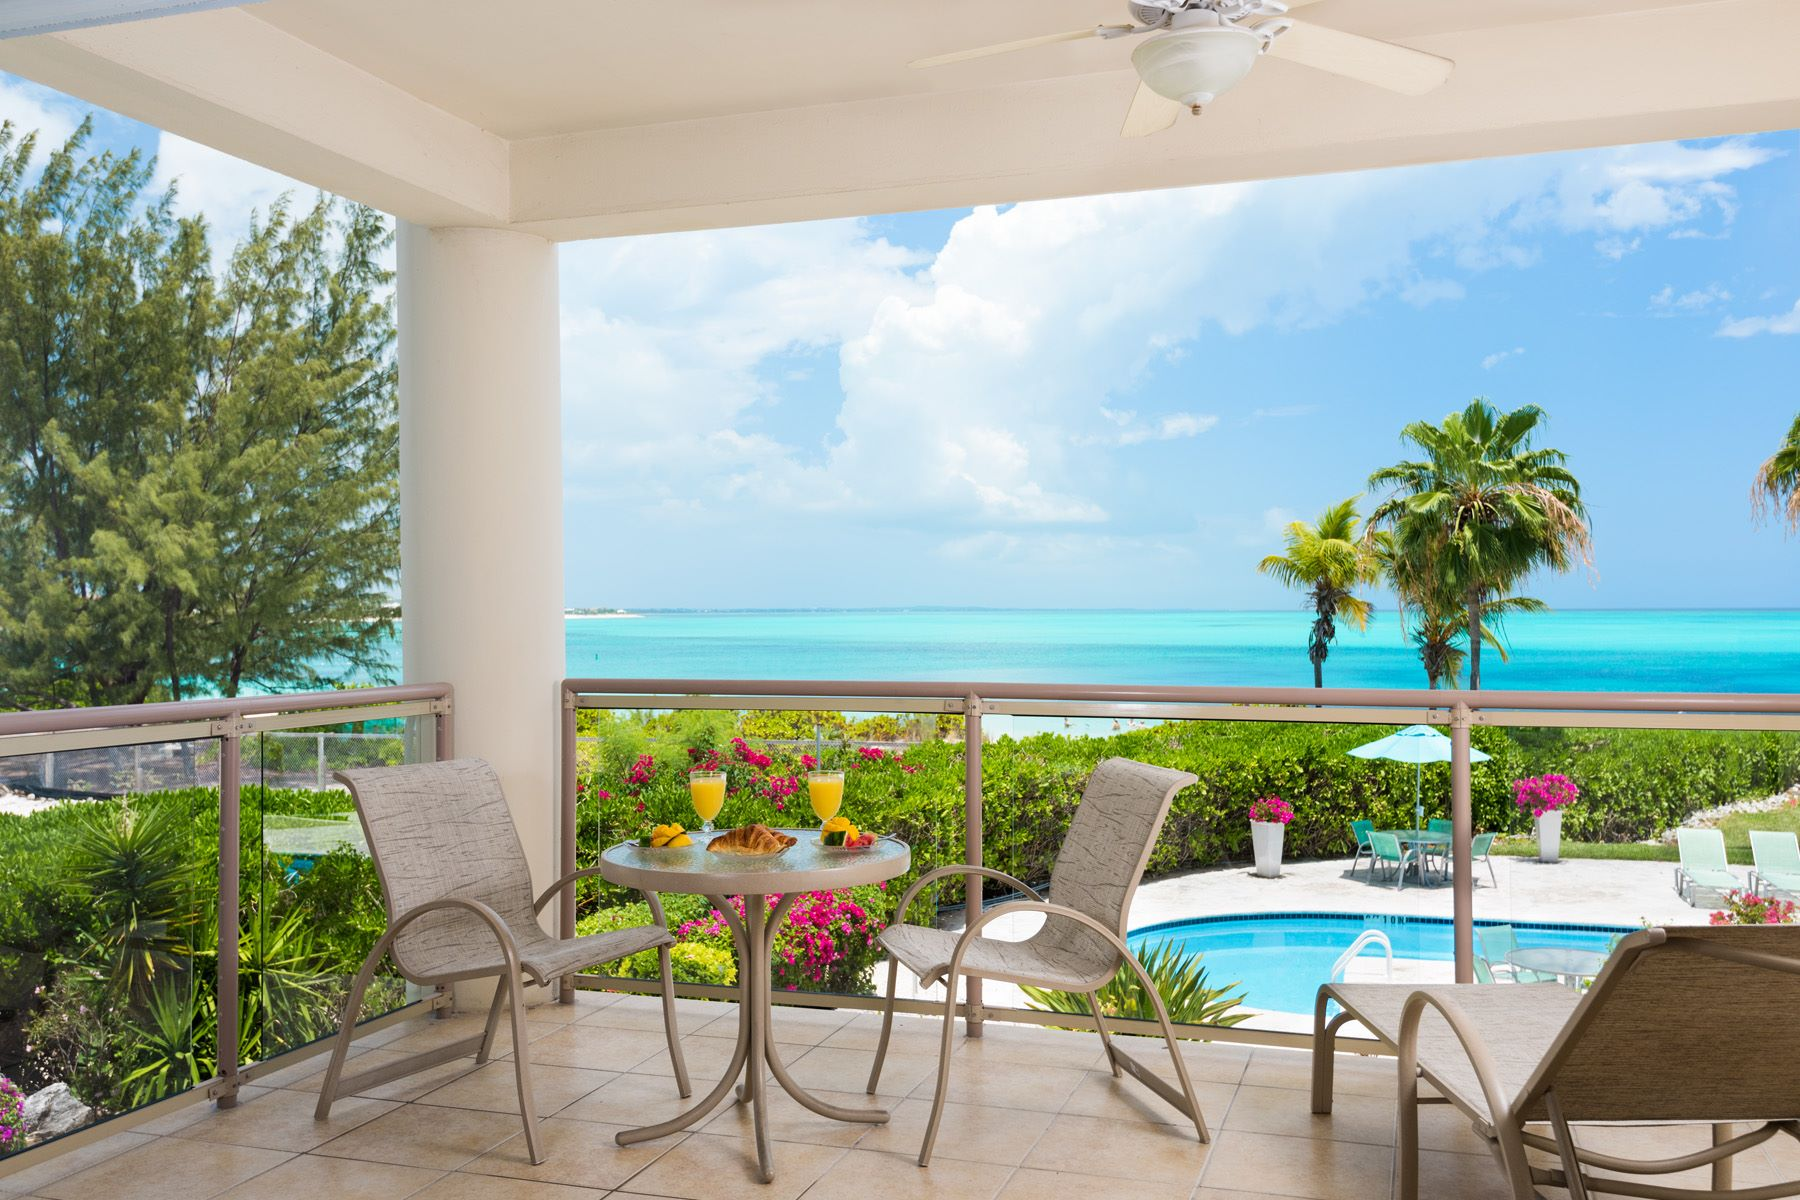 Additional photo for property listing at Coral Gardens - Suite 4202 Beachfront Grace Bay, Провиденсьялес TC Теркс И Кайкос